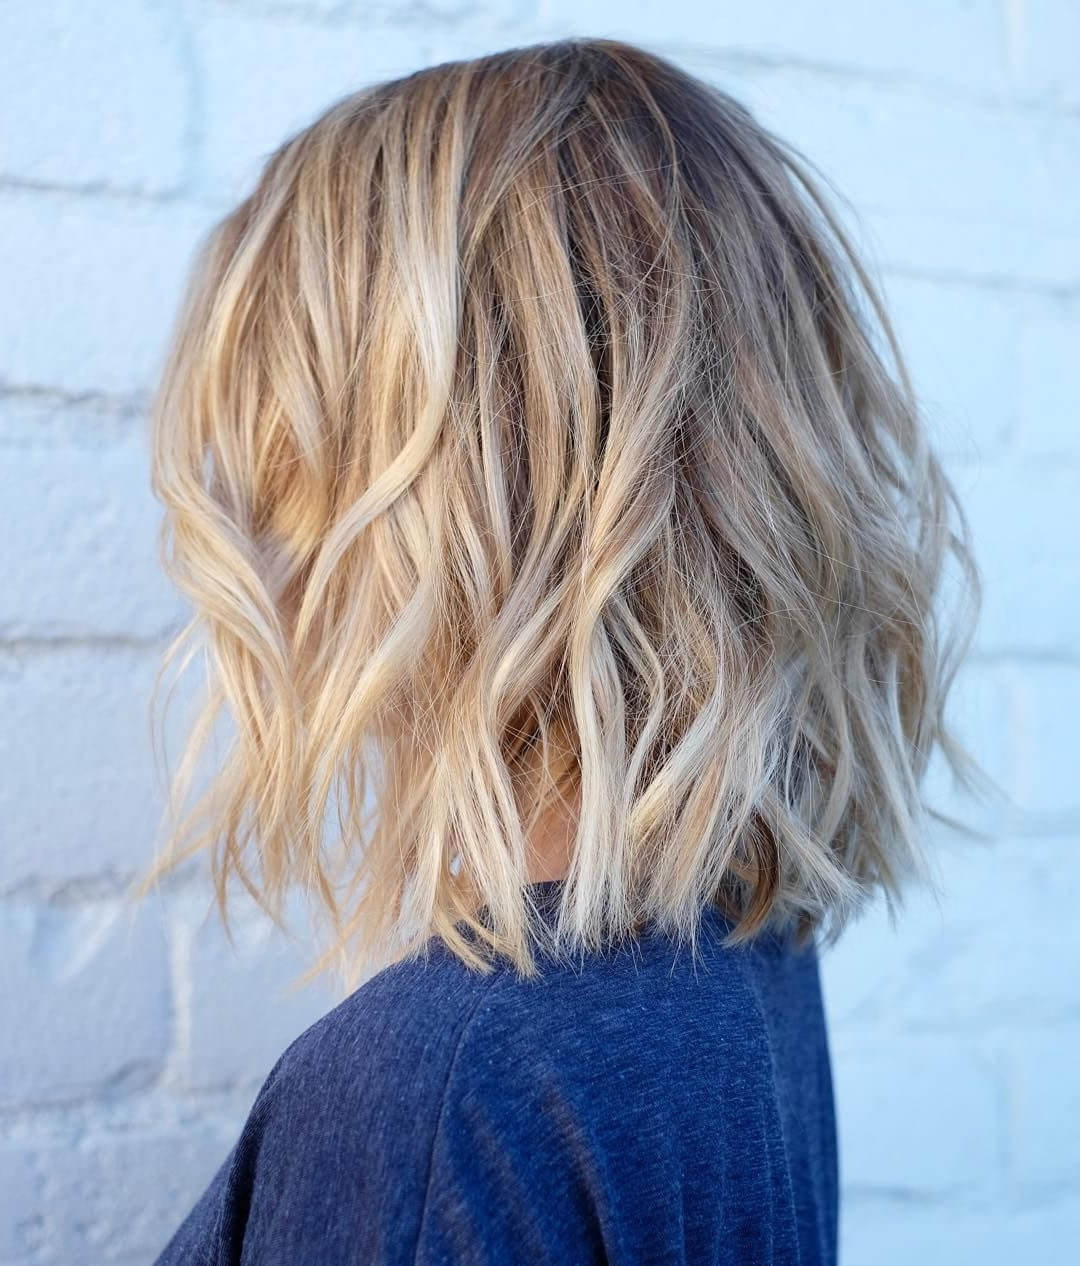 50 Fresh Short Blonde Hair Ideas To Update Your Style In 2018 Intended For Fashionable Dirty Blonde Bob Hairstyles (View 1 of 20)